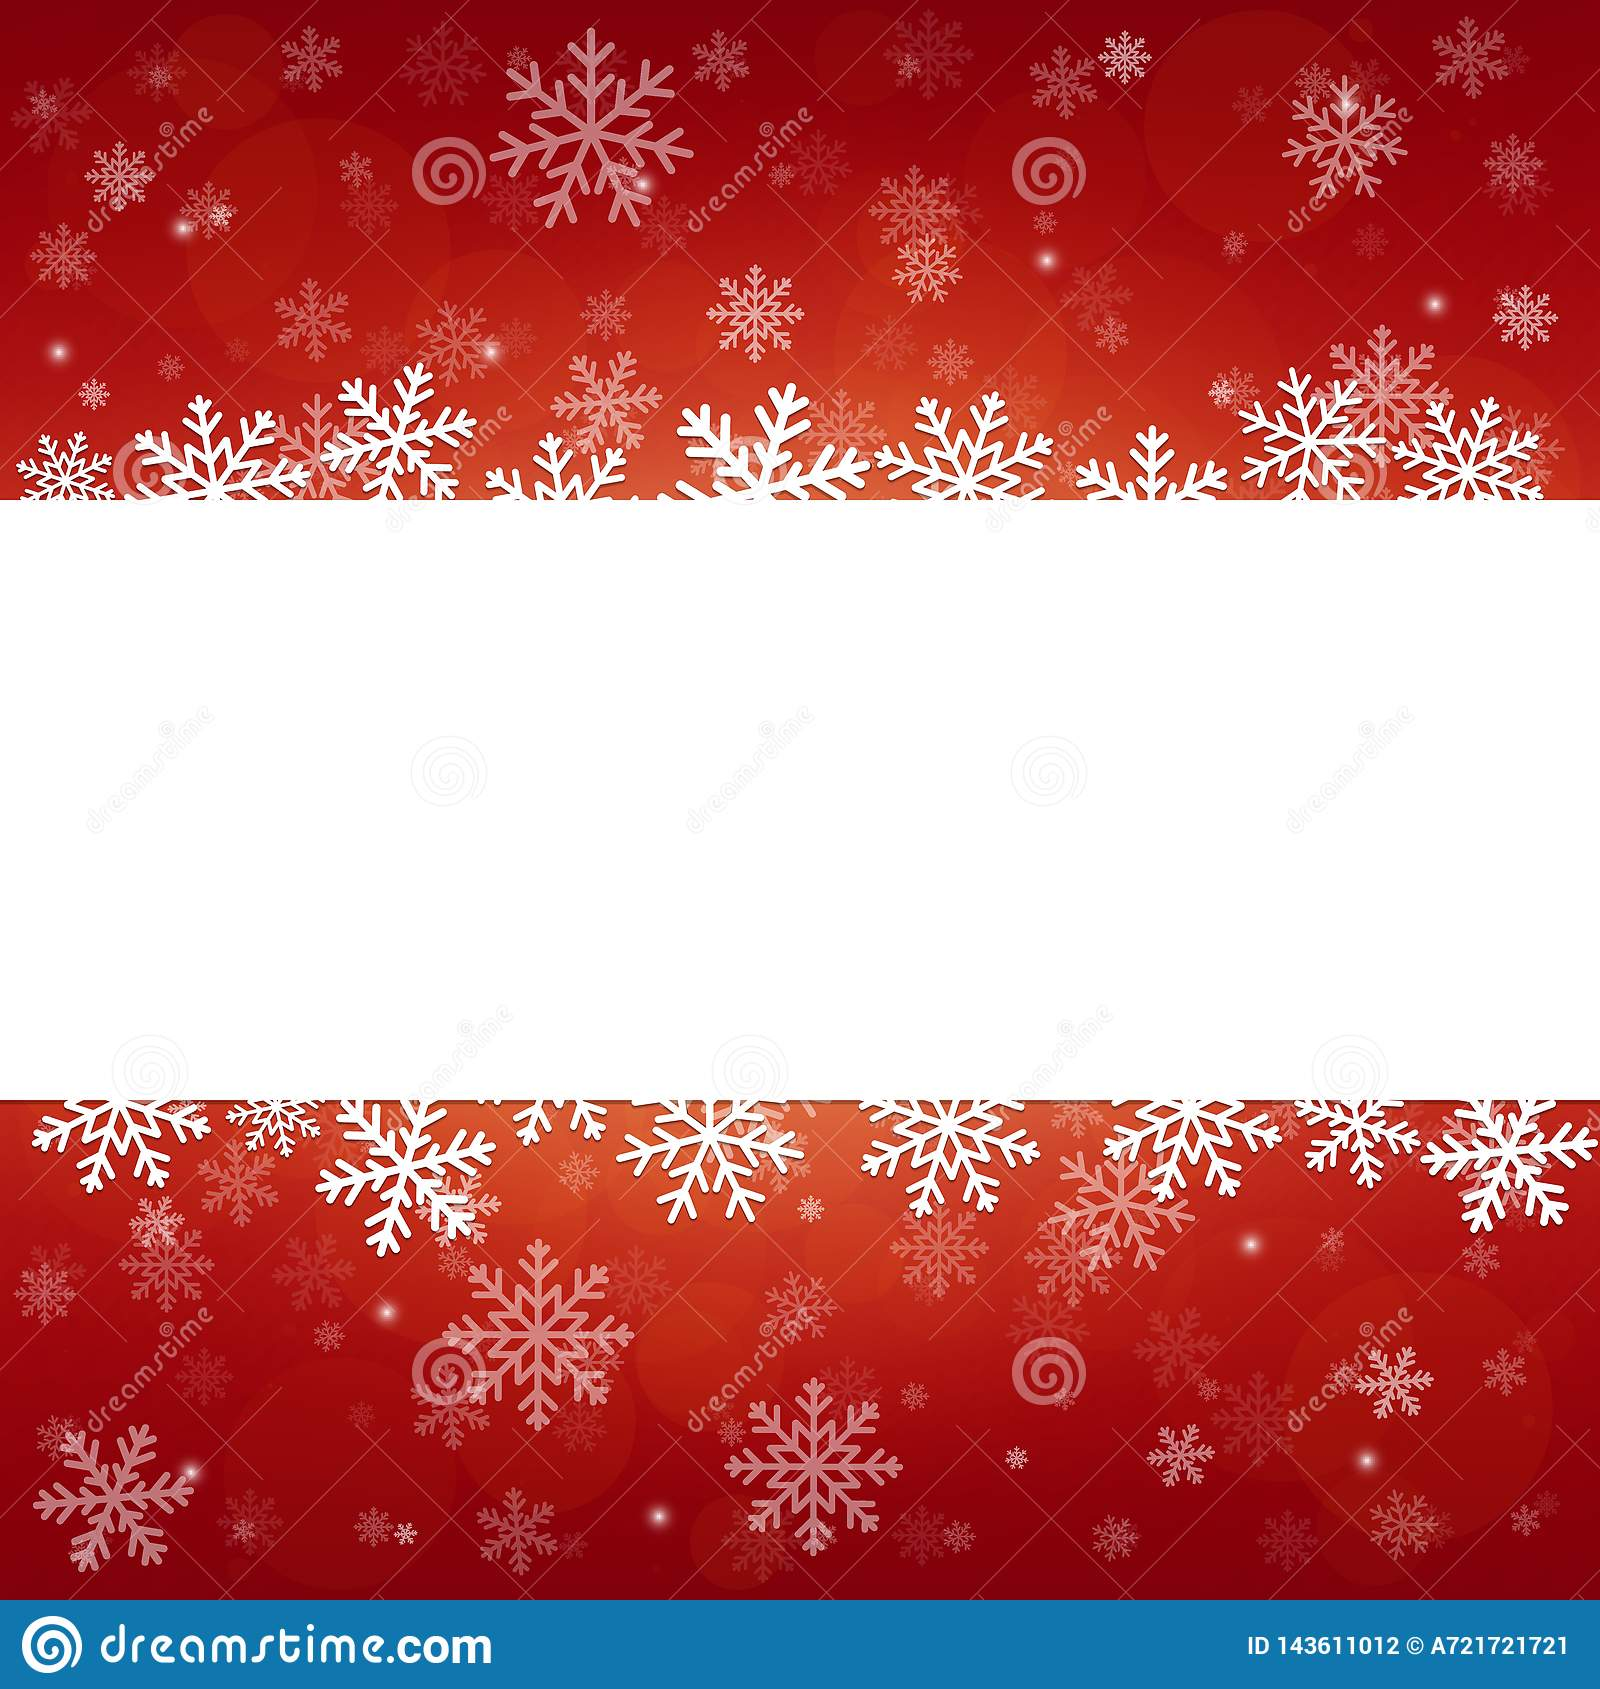 Merry Christmas And Happy New Year 2020, 2021 Greeting ...